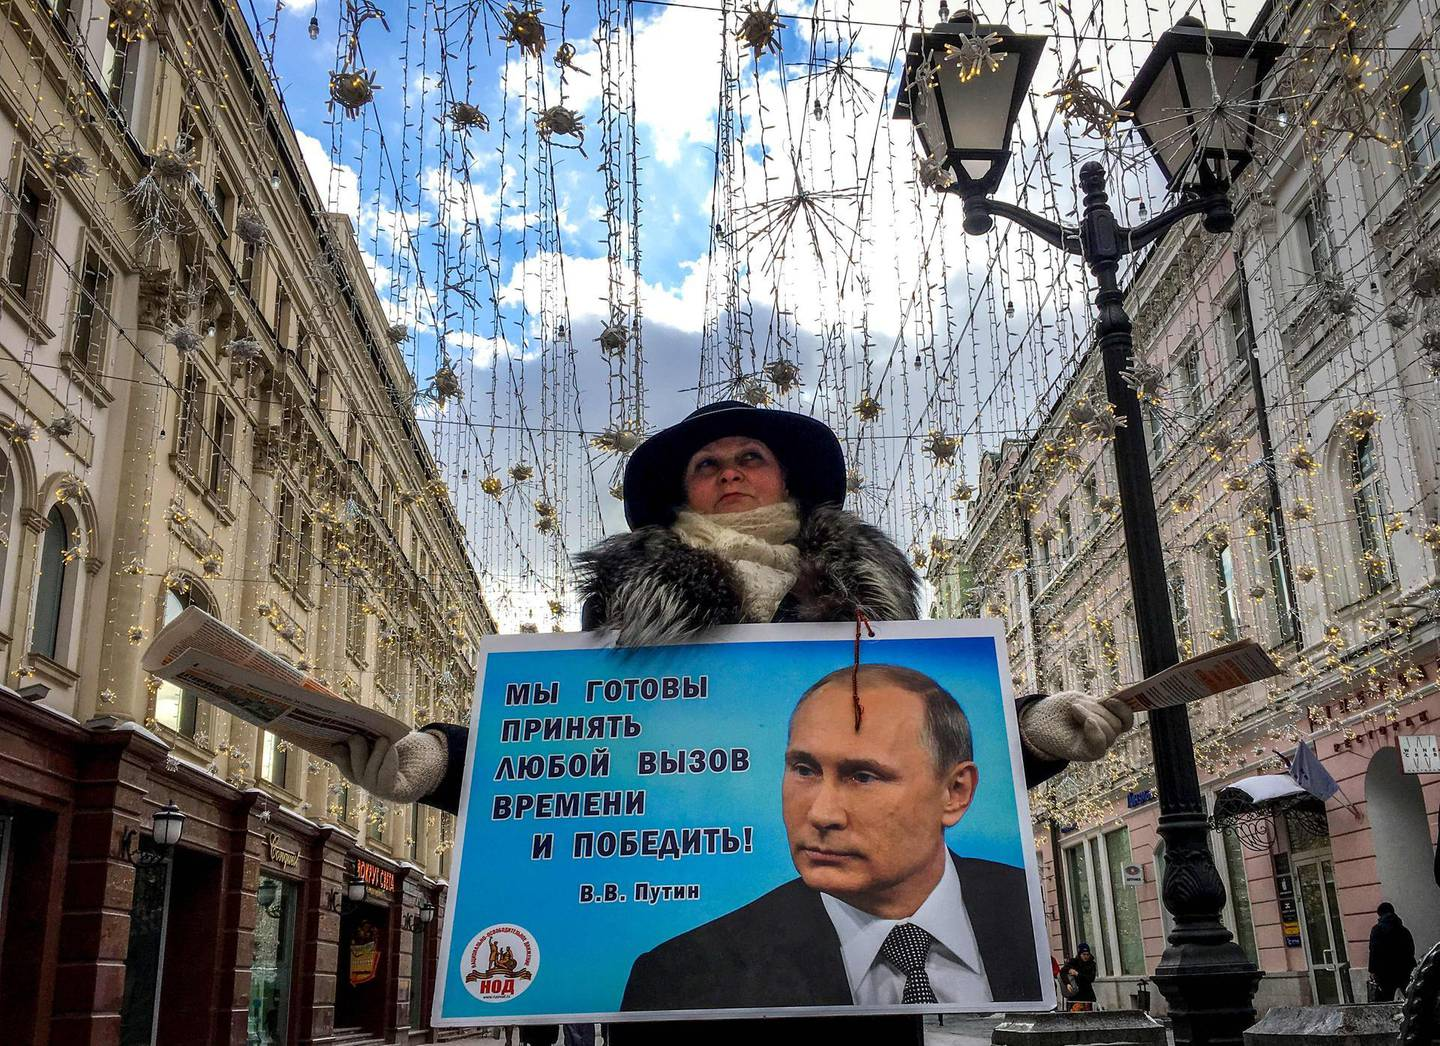 TOPSHOT - An activist distributes election leaflets in support of presidential candidate, President Vladimir Putin on a street in downtown Moscow on March 16, 2018. Russia will vote for president on March 18, 2018. / AFP PHOTO / Yuri KADOBNOV